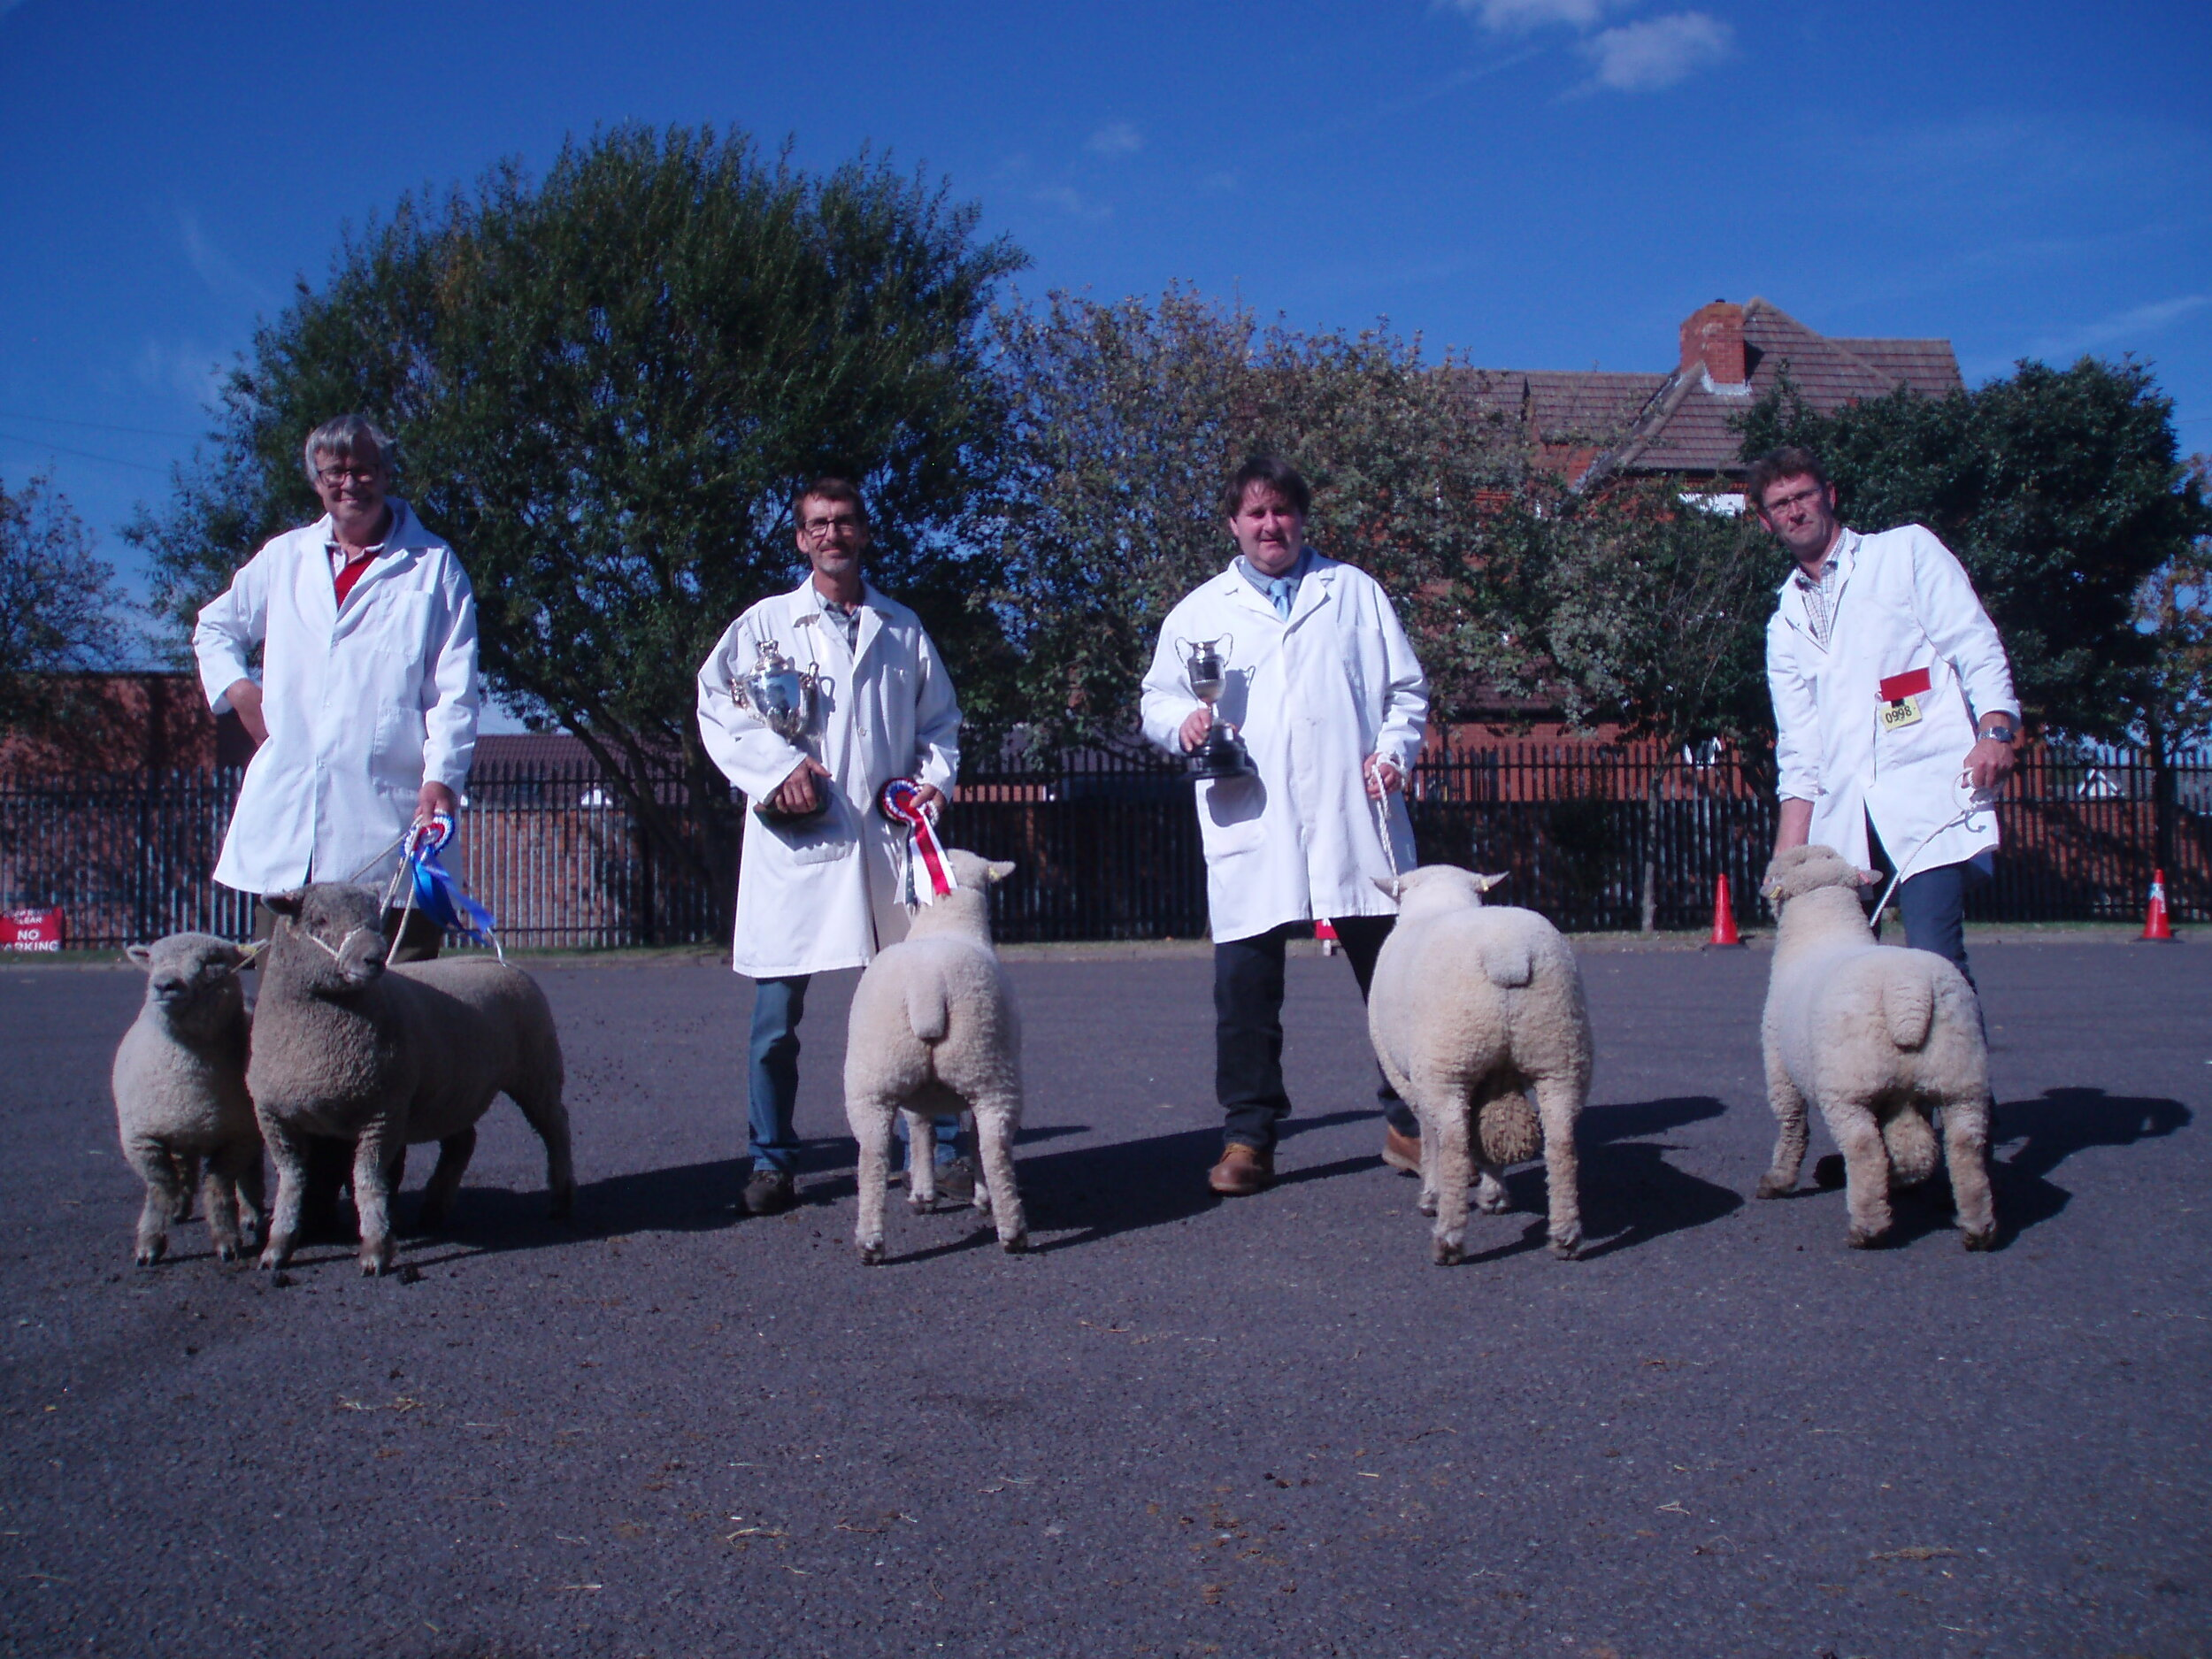 The first prize winners in the show. Left to right: P Goldsworthy – ewe lamb, and Reserve Champion second placed shearling ewe, D, S & P Humphrey's Champion shearling ewe, and shearling ram and Ben Slack's ram lamb.